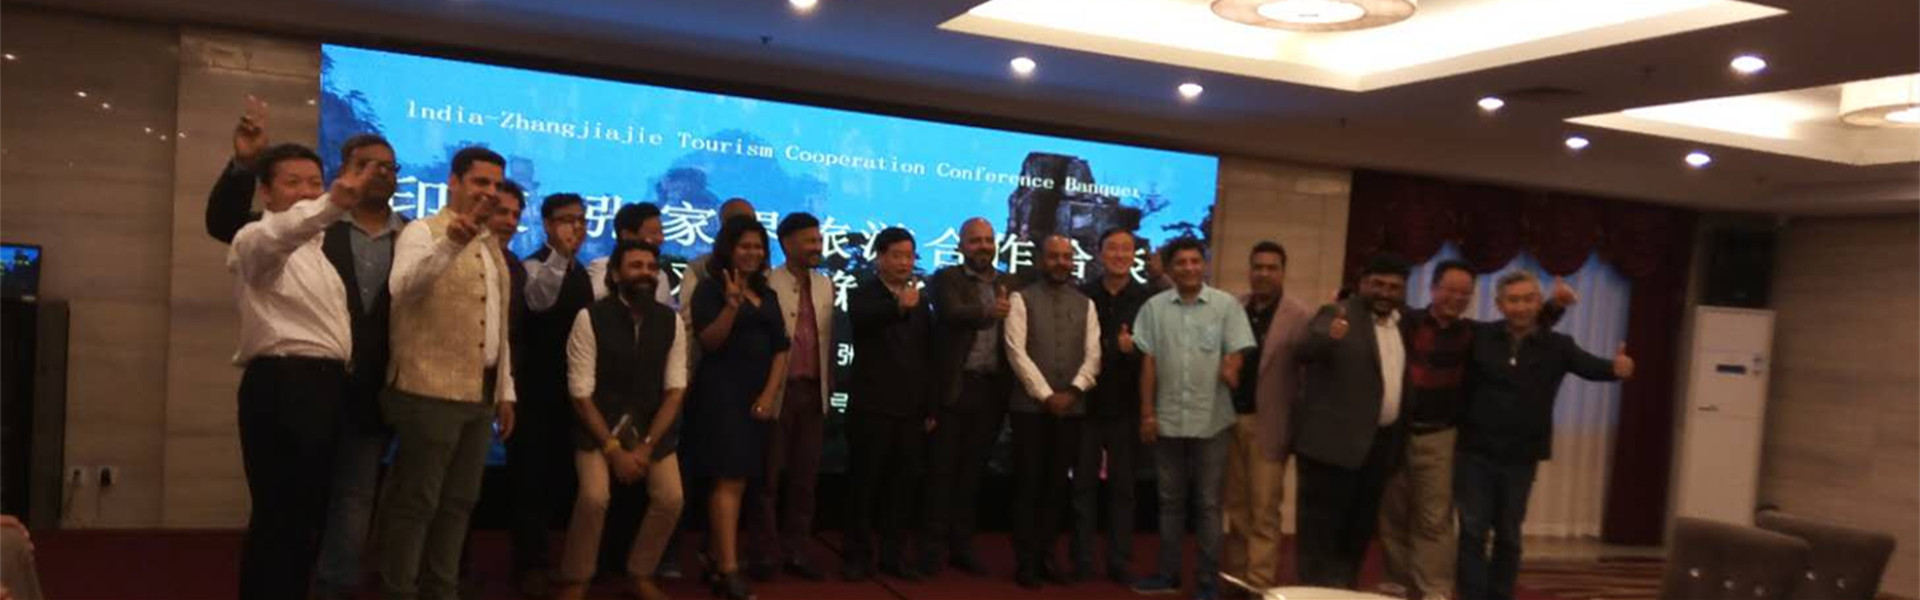 India-Zhangjiajie Tourism Cooperation Conference held in Zhangjiajie